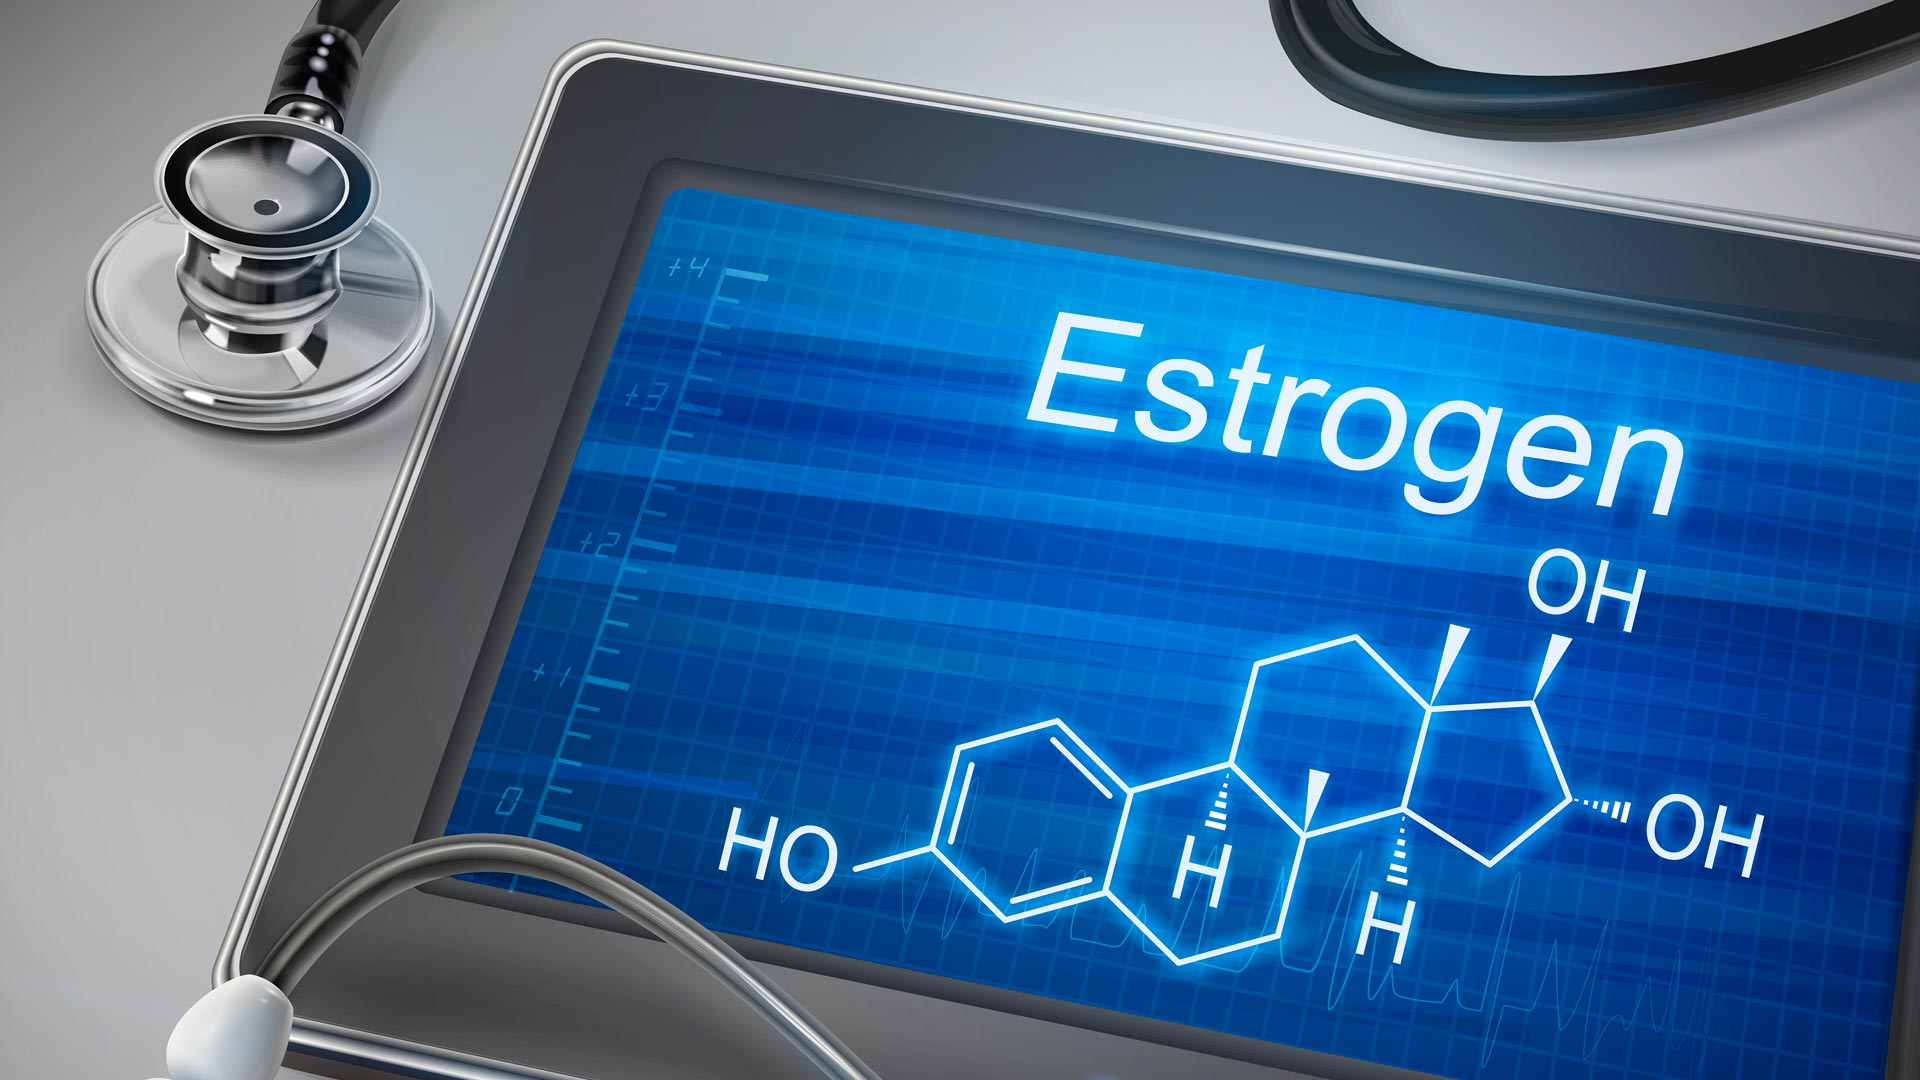 Is estrogen toxic